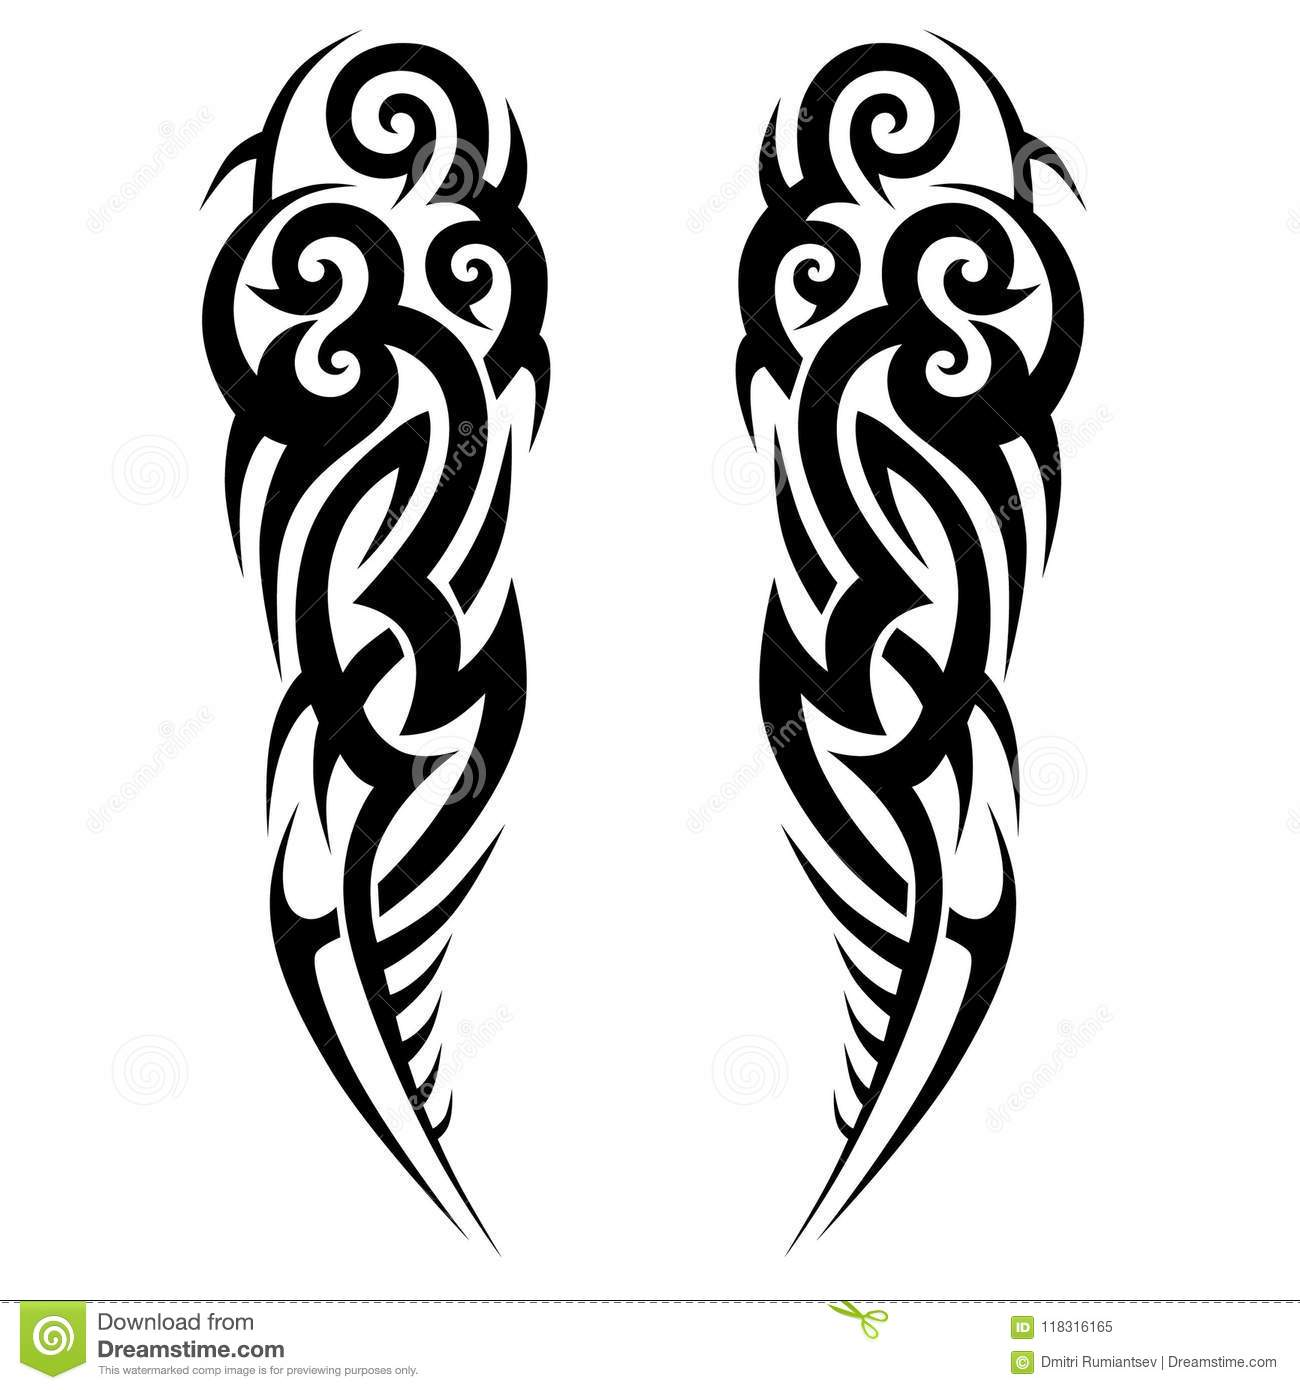 489cb7461 Tattoo tribal vector design sketch. Sleeve art abstract pattern arm. Simple  icon on white background. Designer isolated abstract element for arm, leg,  ...